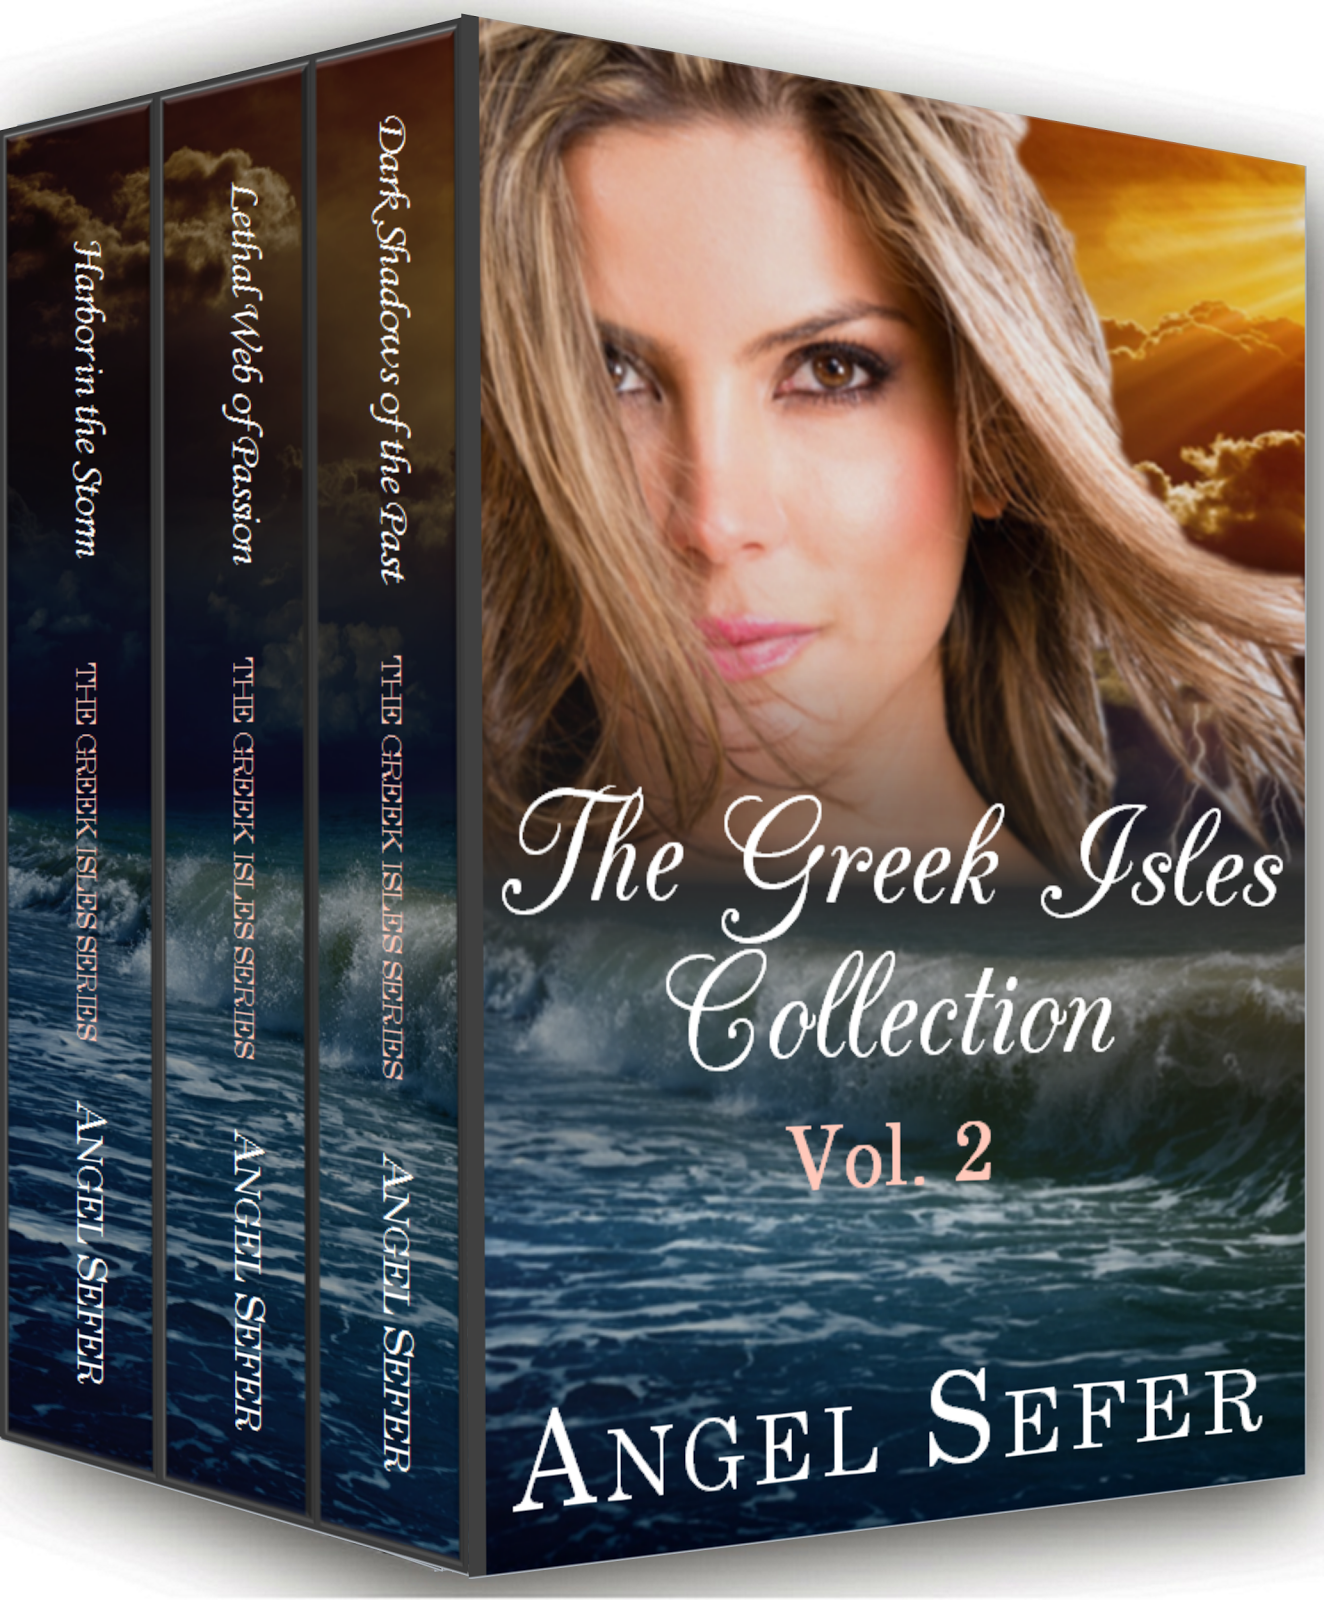 The Greek Isles Collection Vol. 2